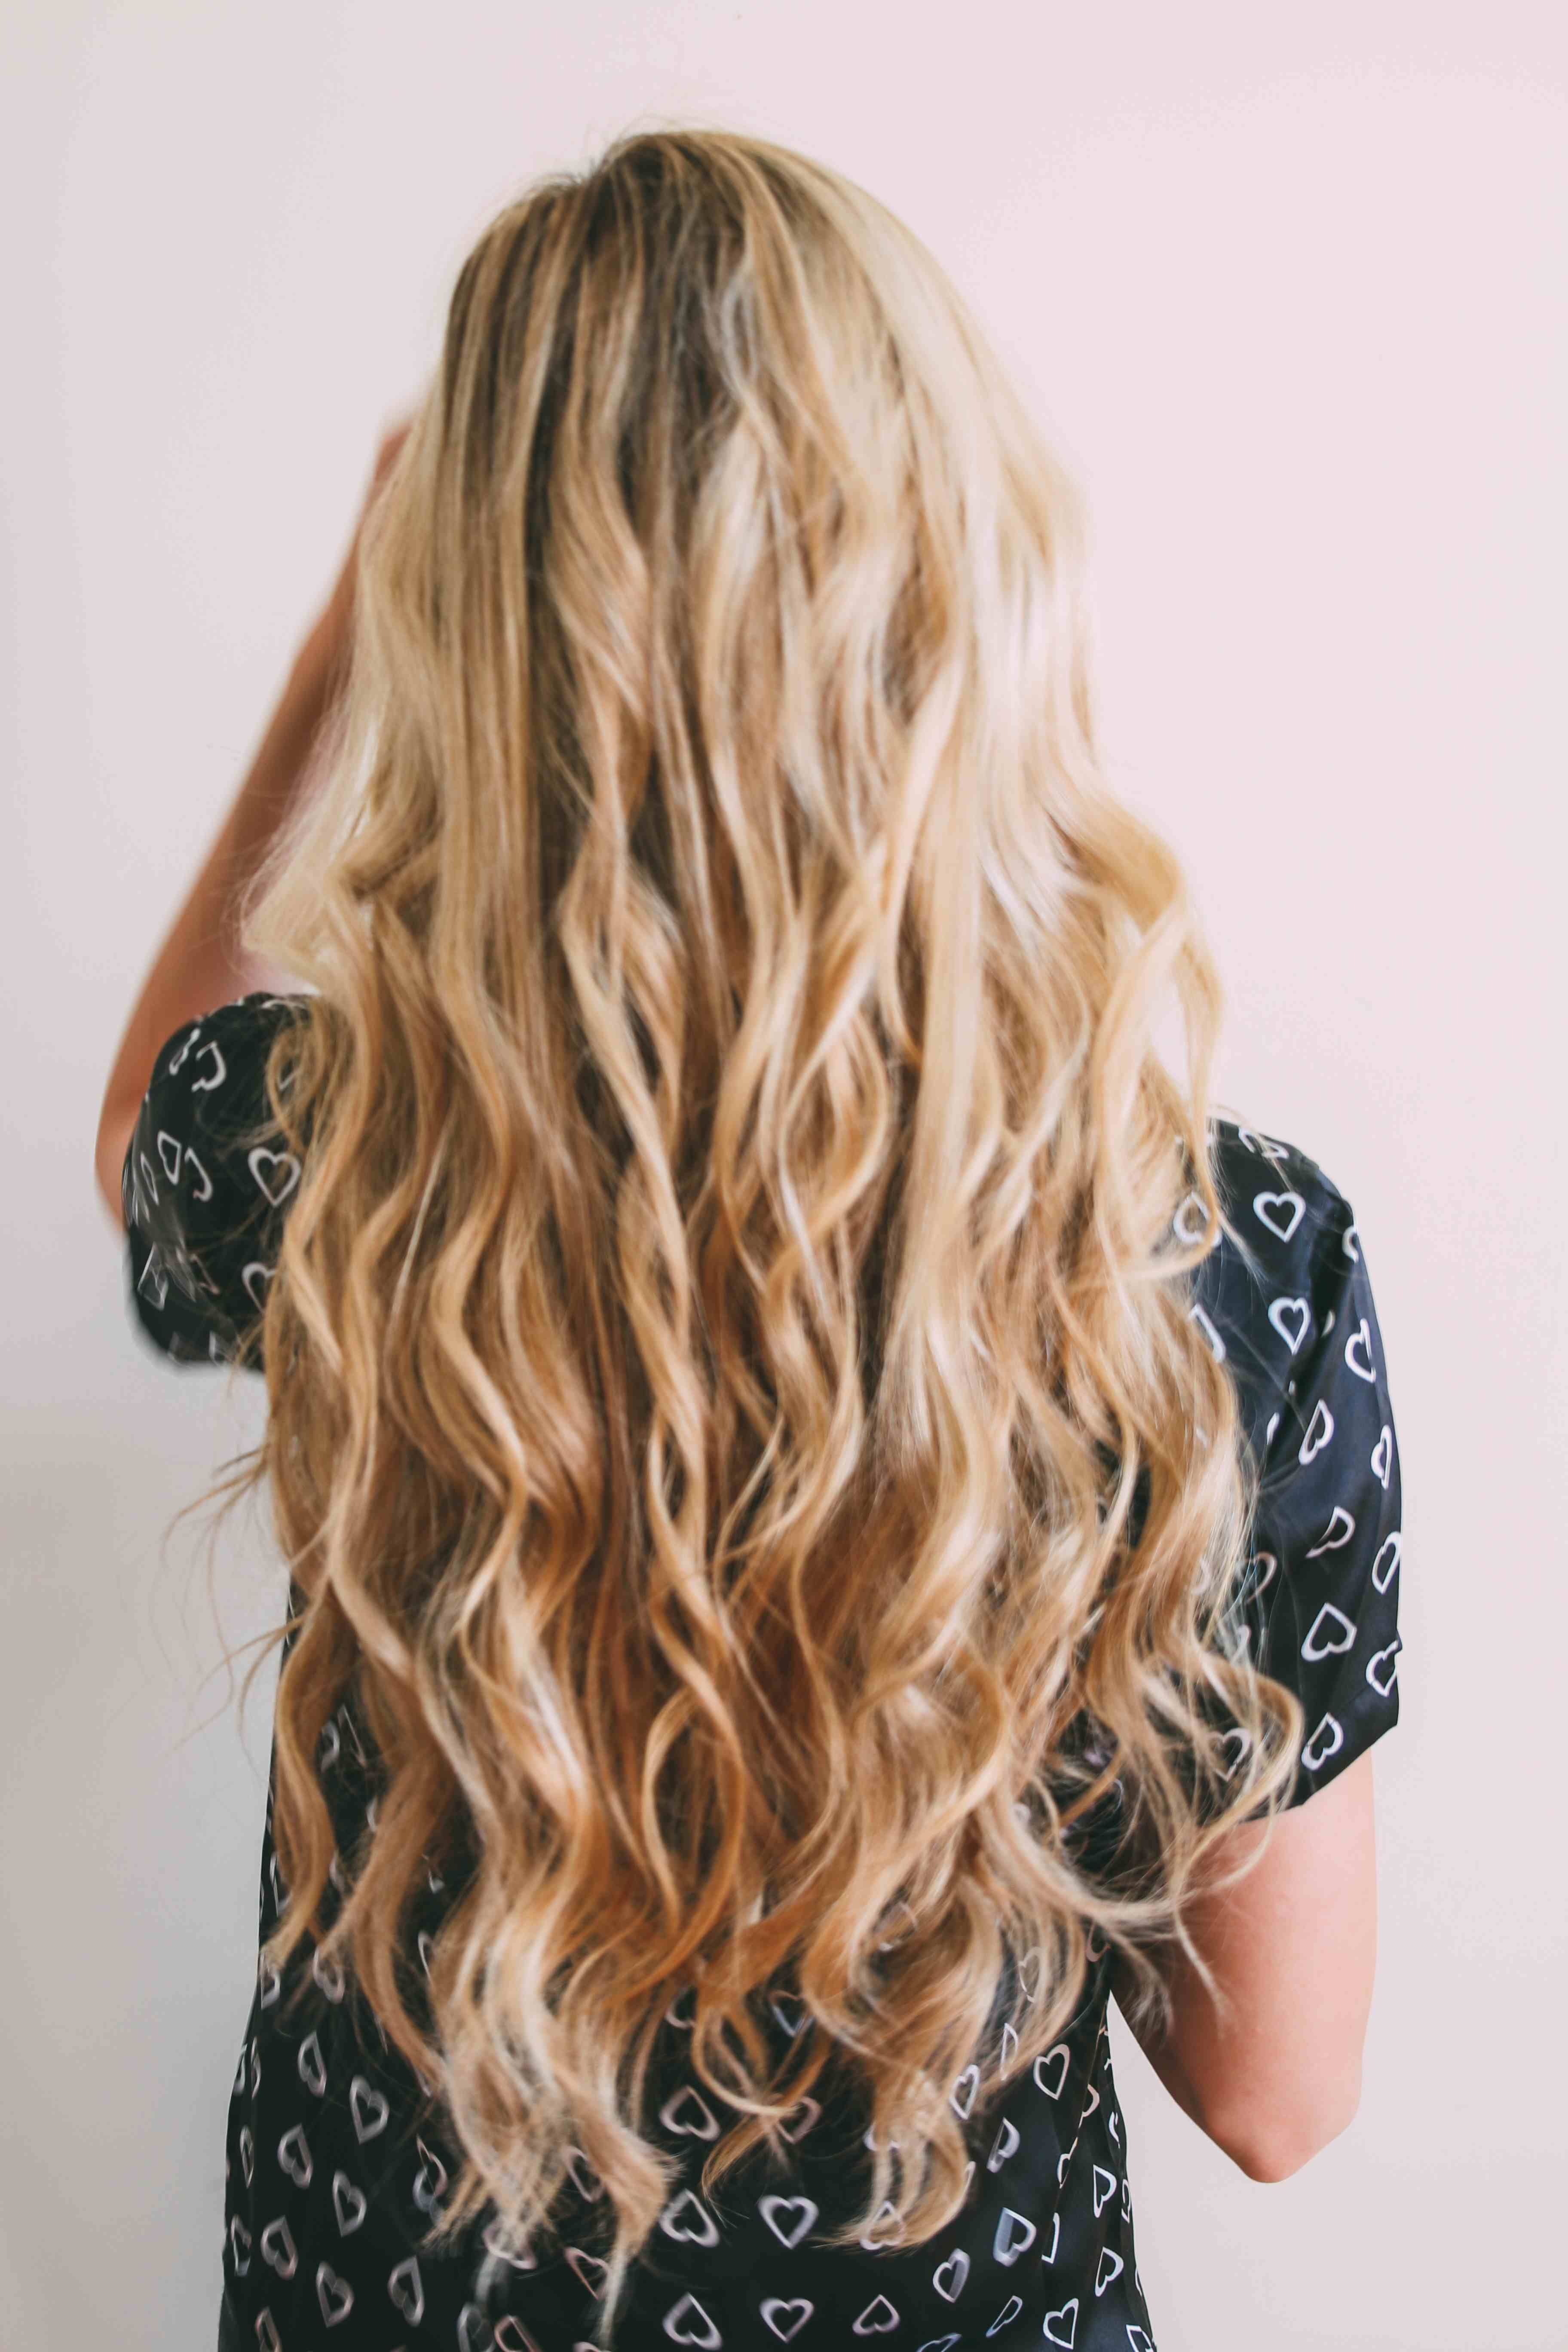 The Straightener Curl Barefoot Blonde By Amber Fillerup Clark Curls With Straightener Long Hair Styles Hair Styles